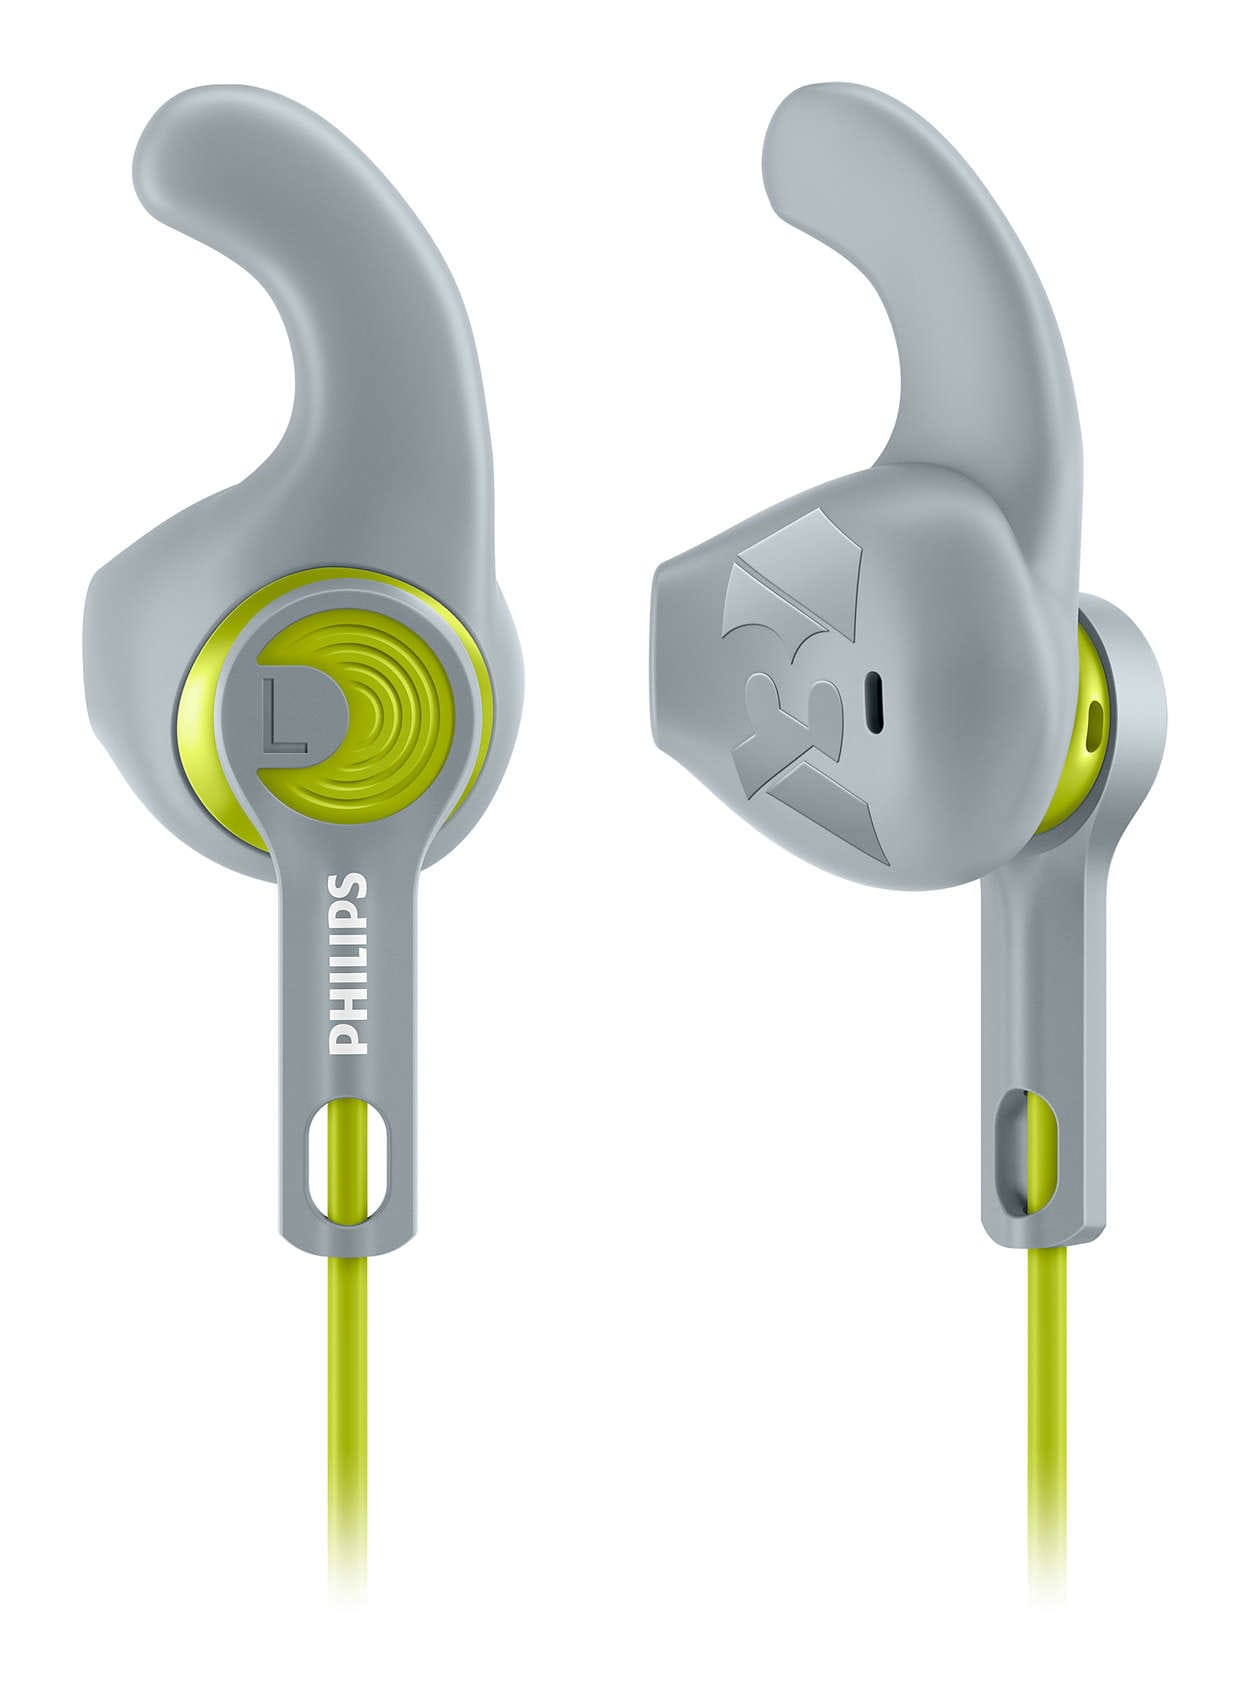 Philipps Online Shop Philips Shq1300 Wired Headphone Lime Green Price In India Buy